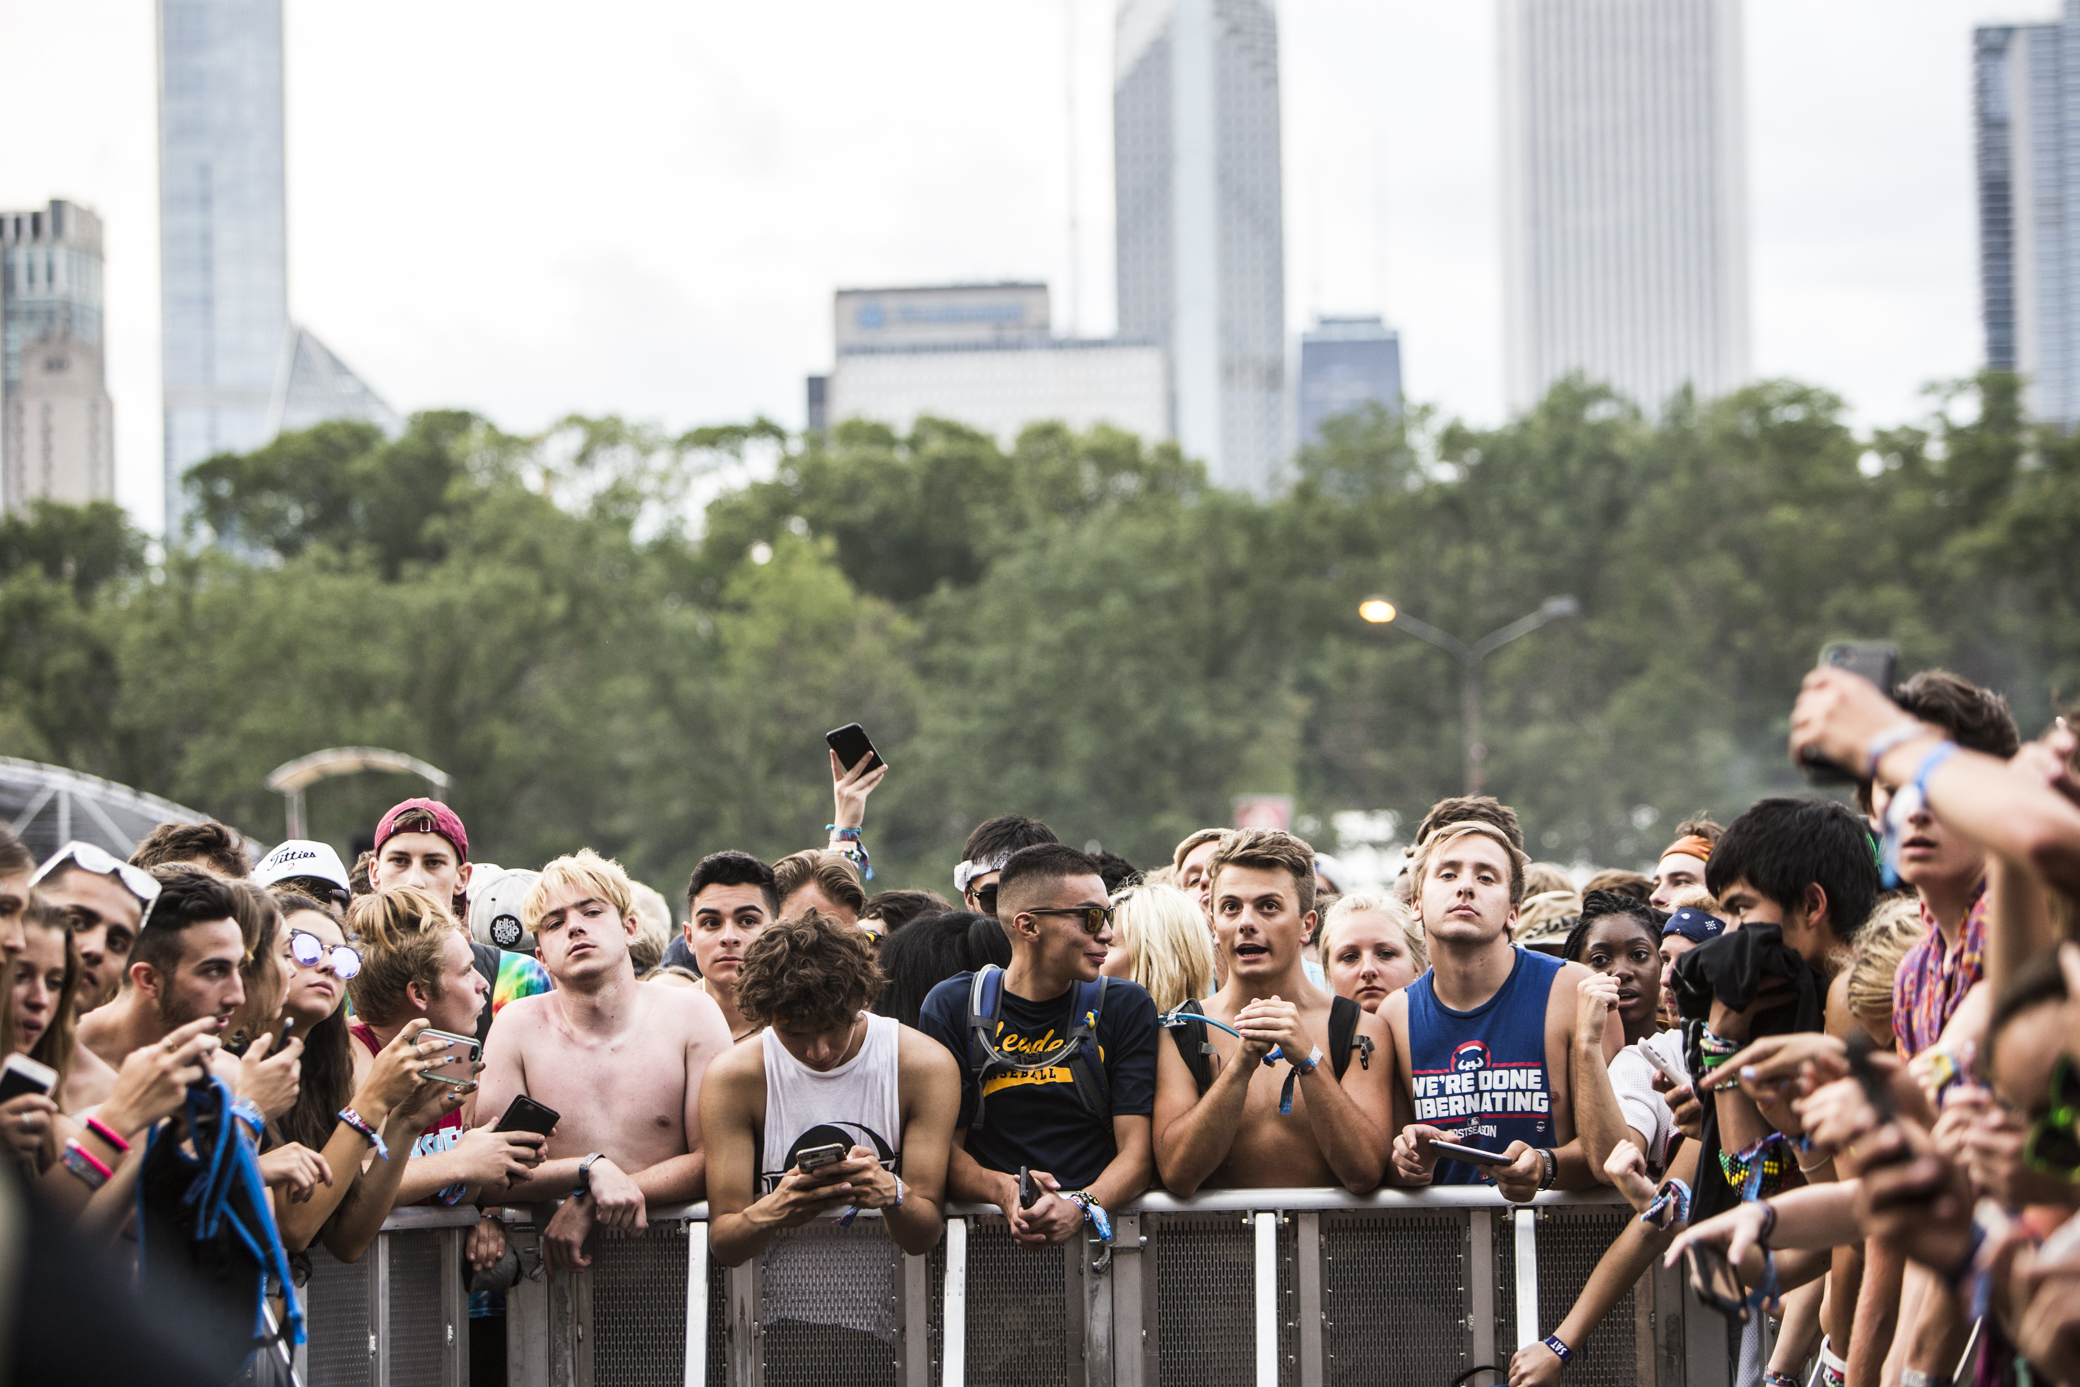 Lollapalooza 2017 // Photo by Philip Cosores